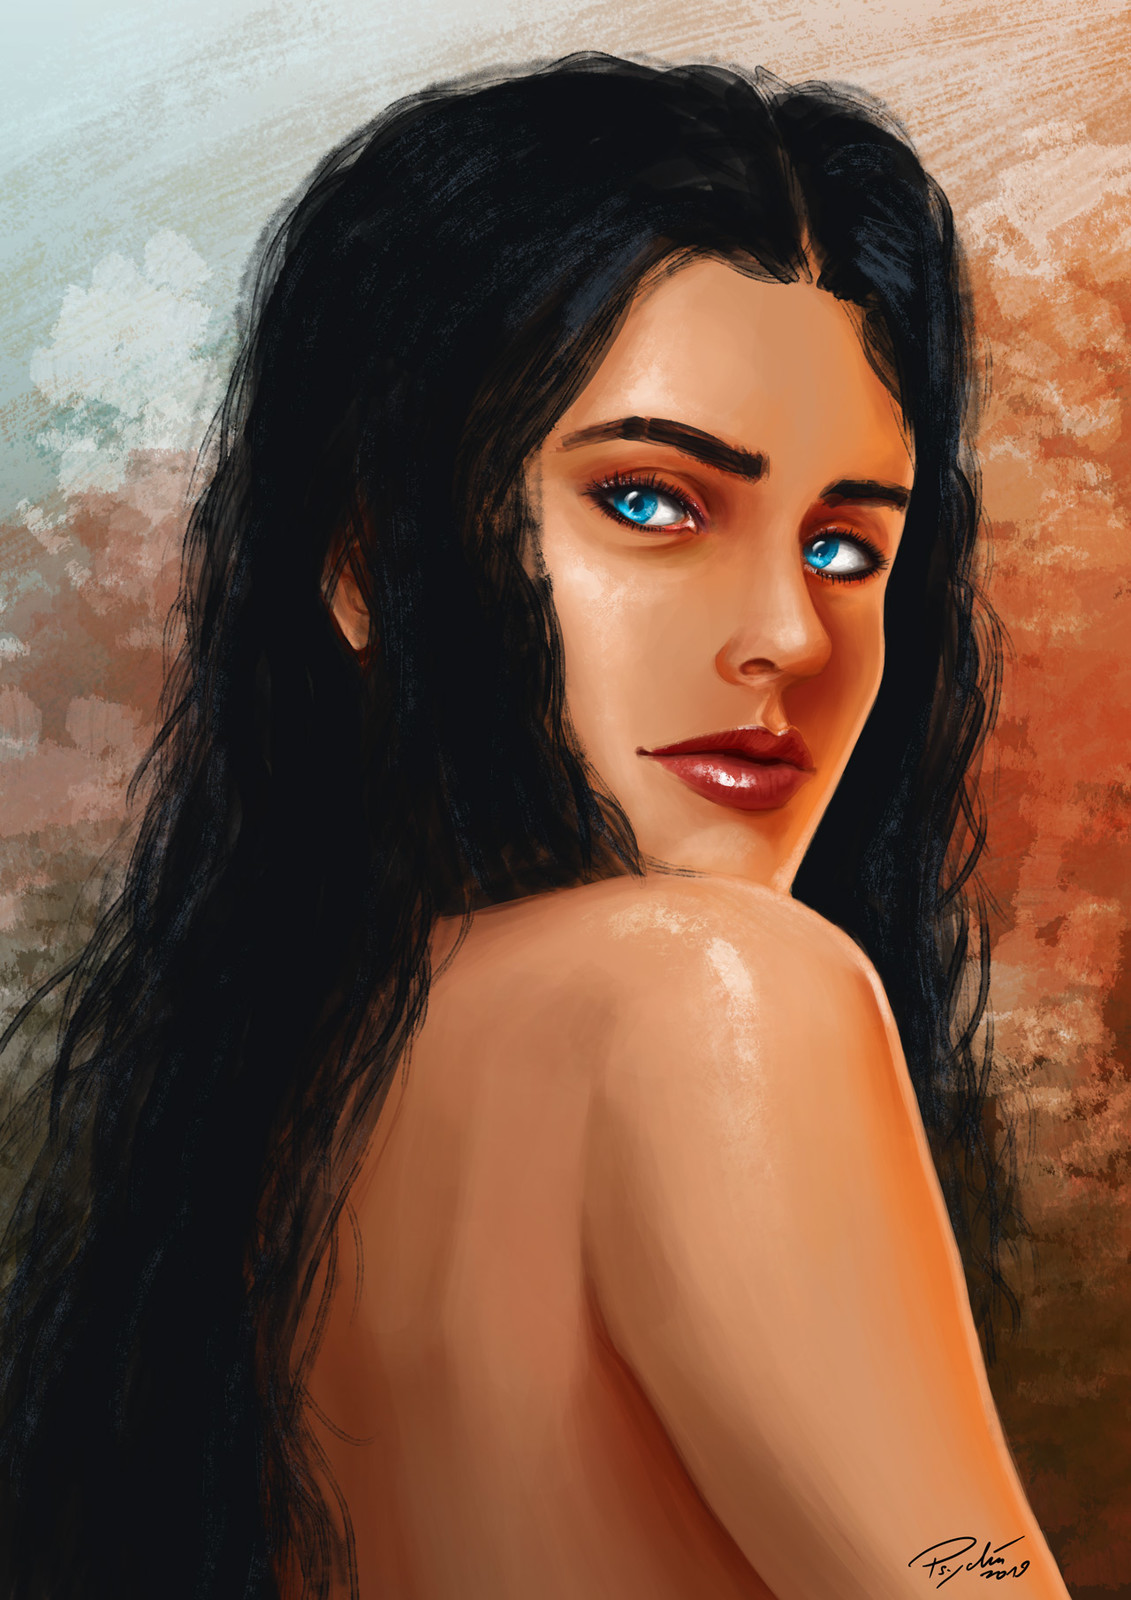 Training in portrait painting